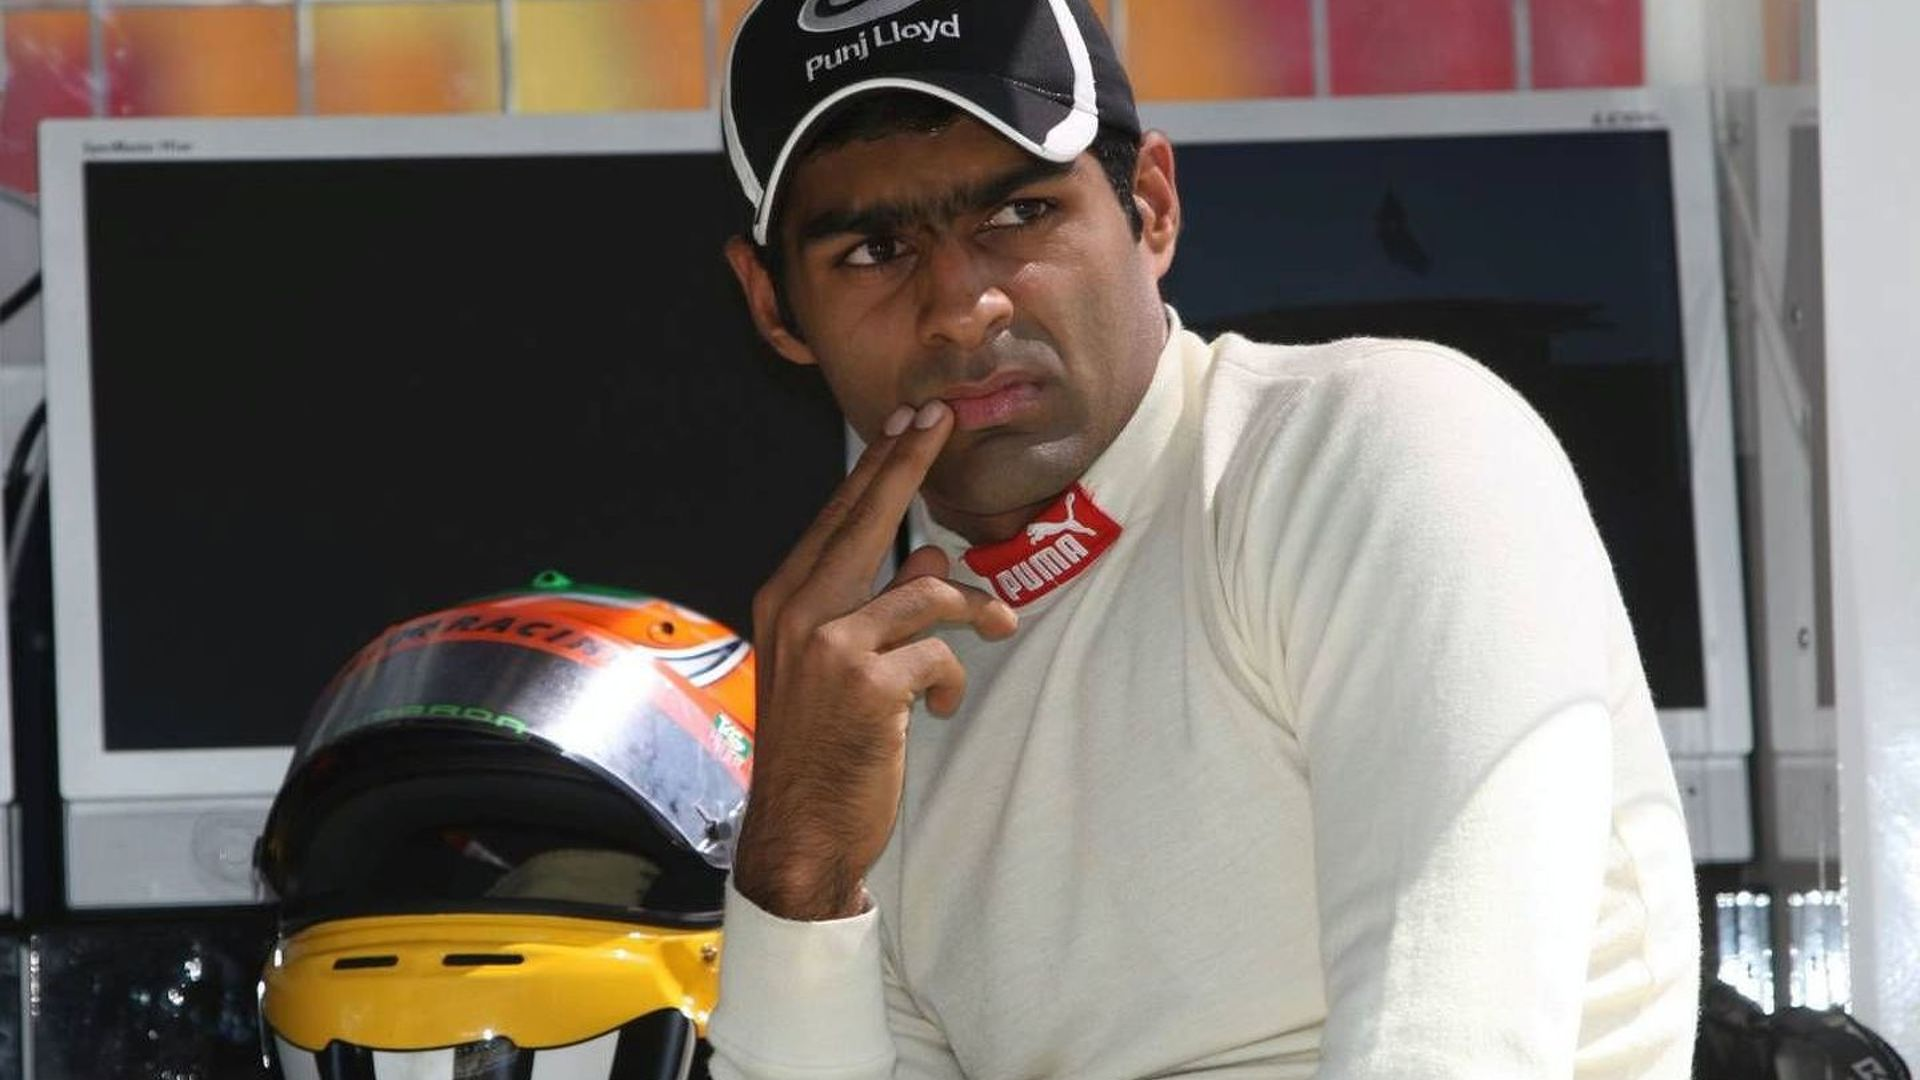 Chandhok not disappointed by Force India snub